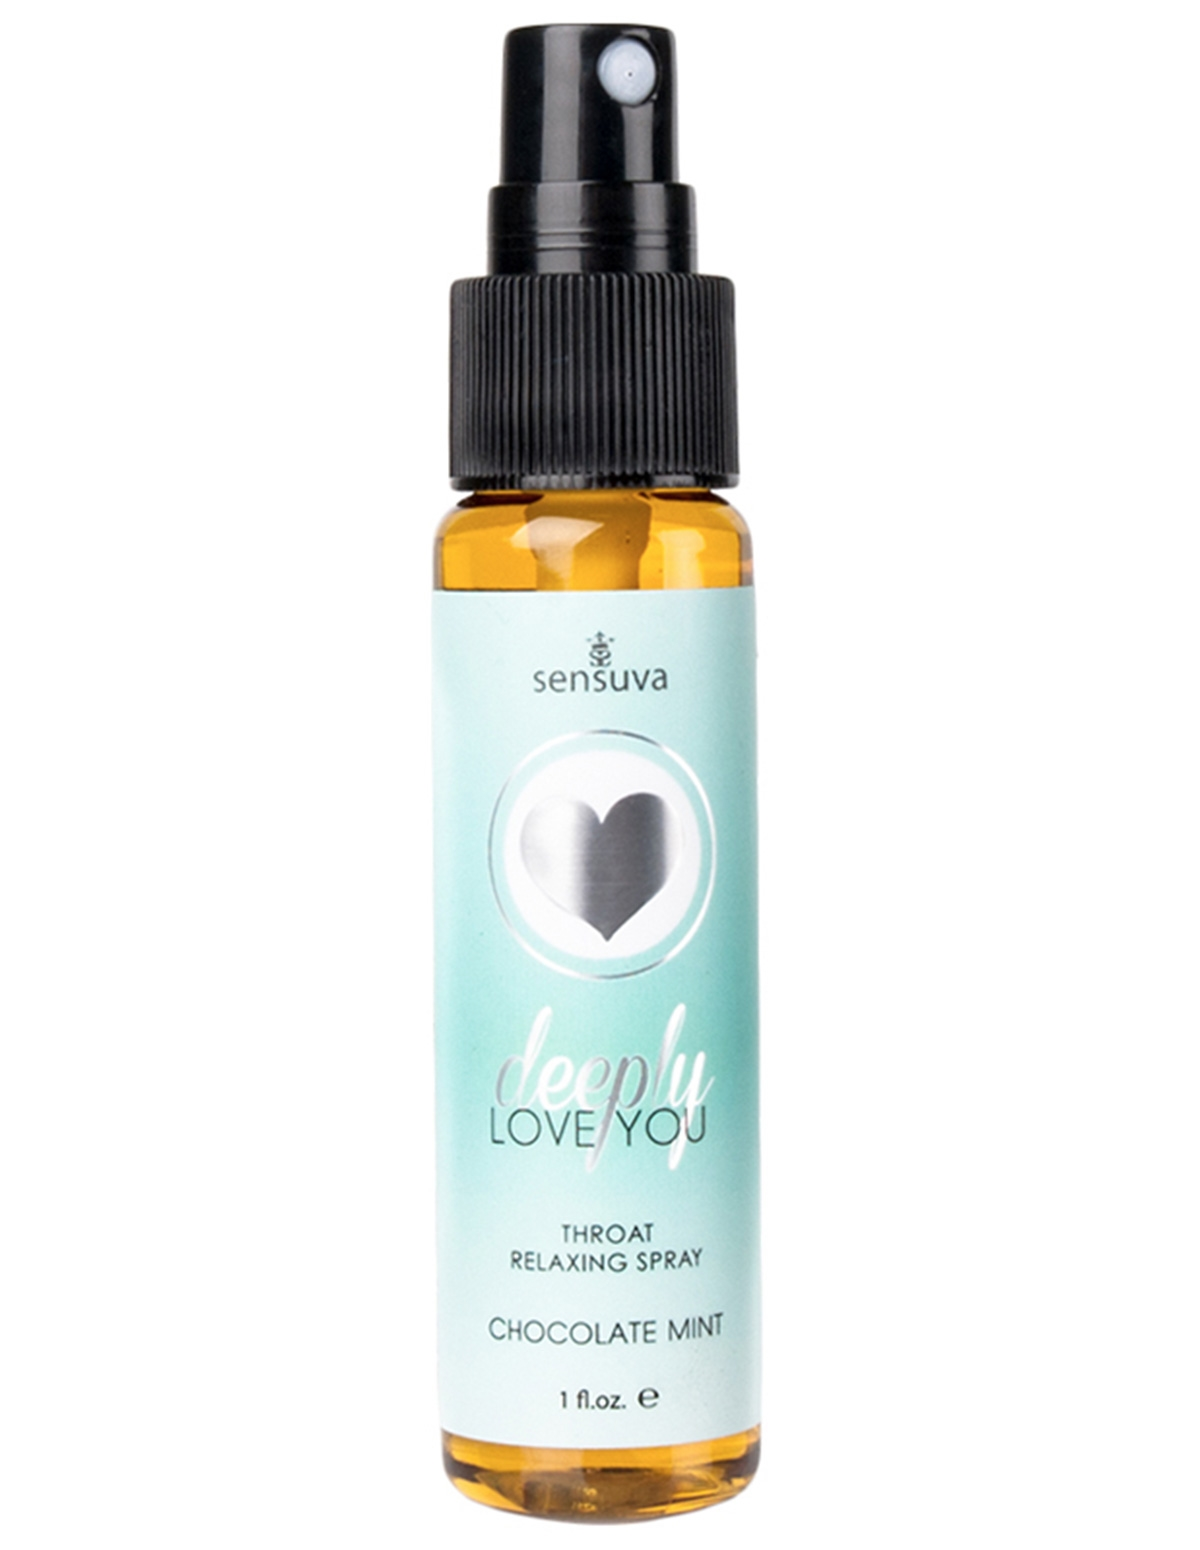 Throat Relaxing Spray - Chocolate Mint